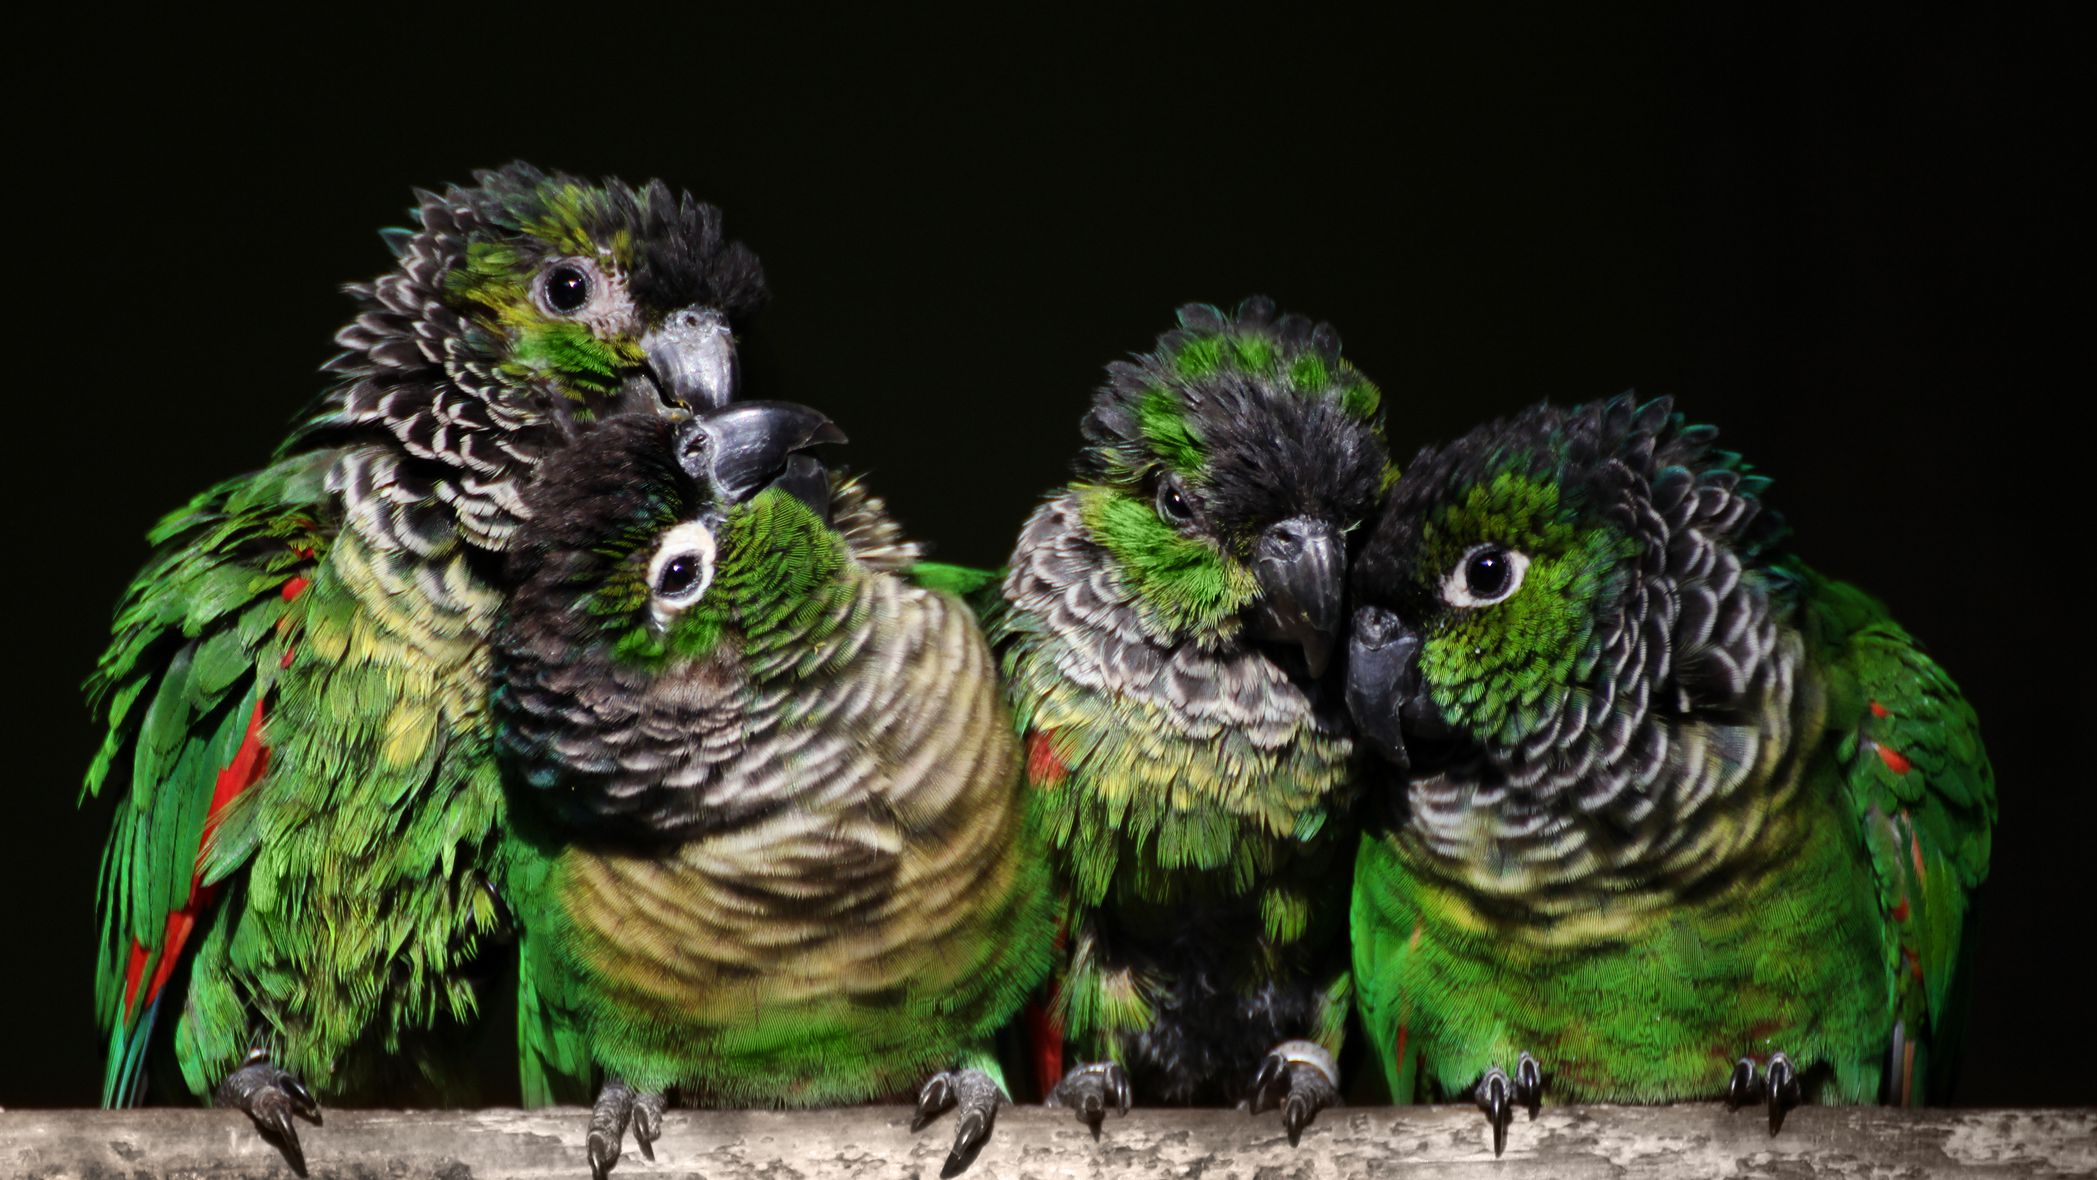 Black Capped Conure Full Profile History And Care,Eggplant Chinese Recipe Szechuan